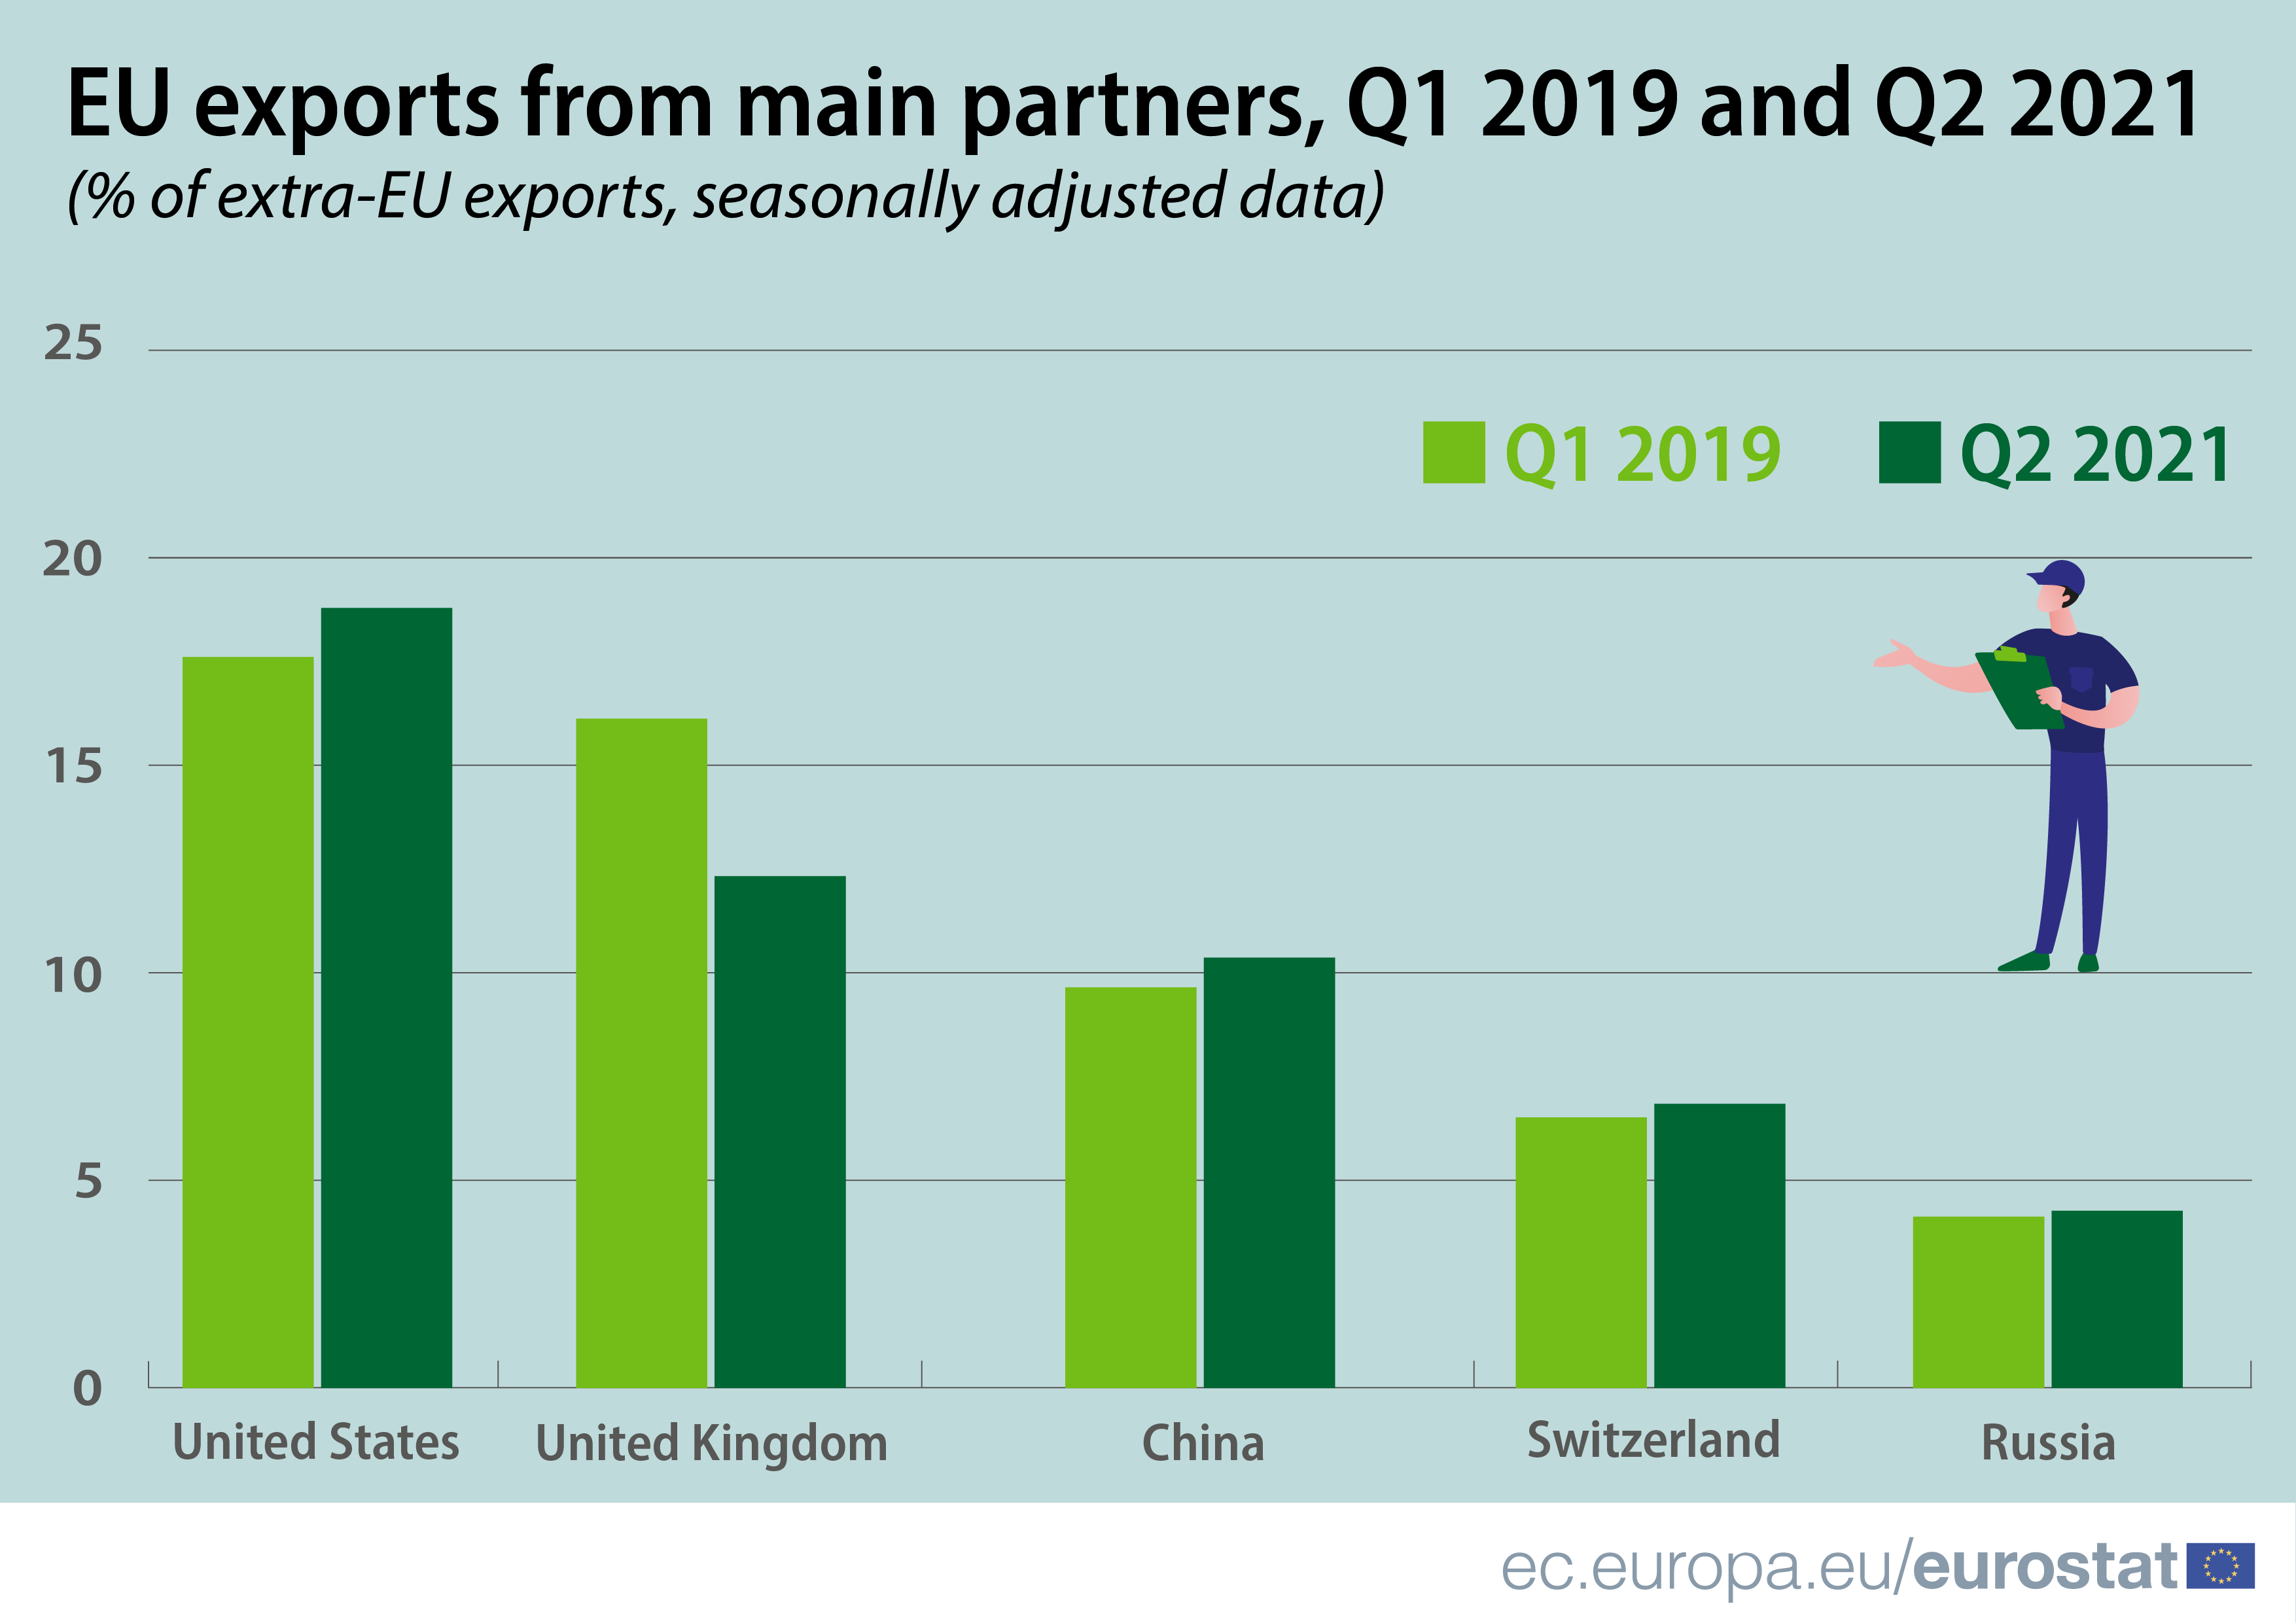 Infographics: EU exports from main partners, Q1 2019 compared to Q2 2021, % of extra-EU exports, seasonally adjusted data